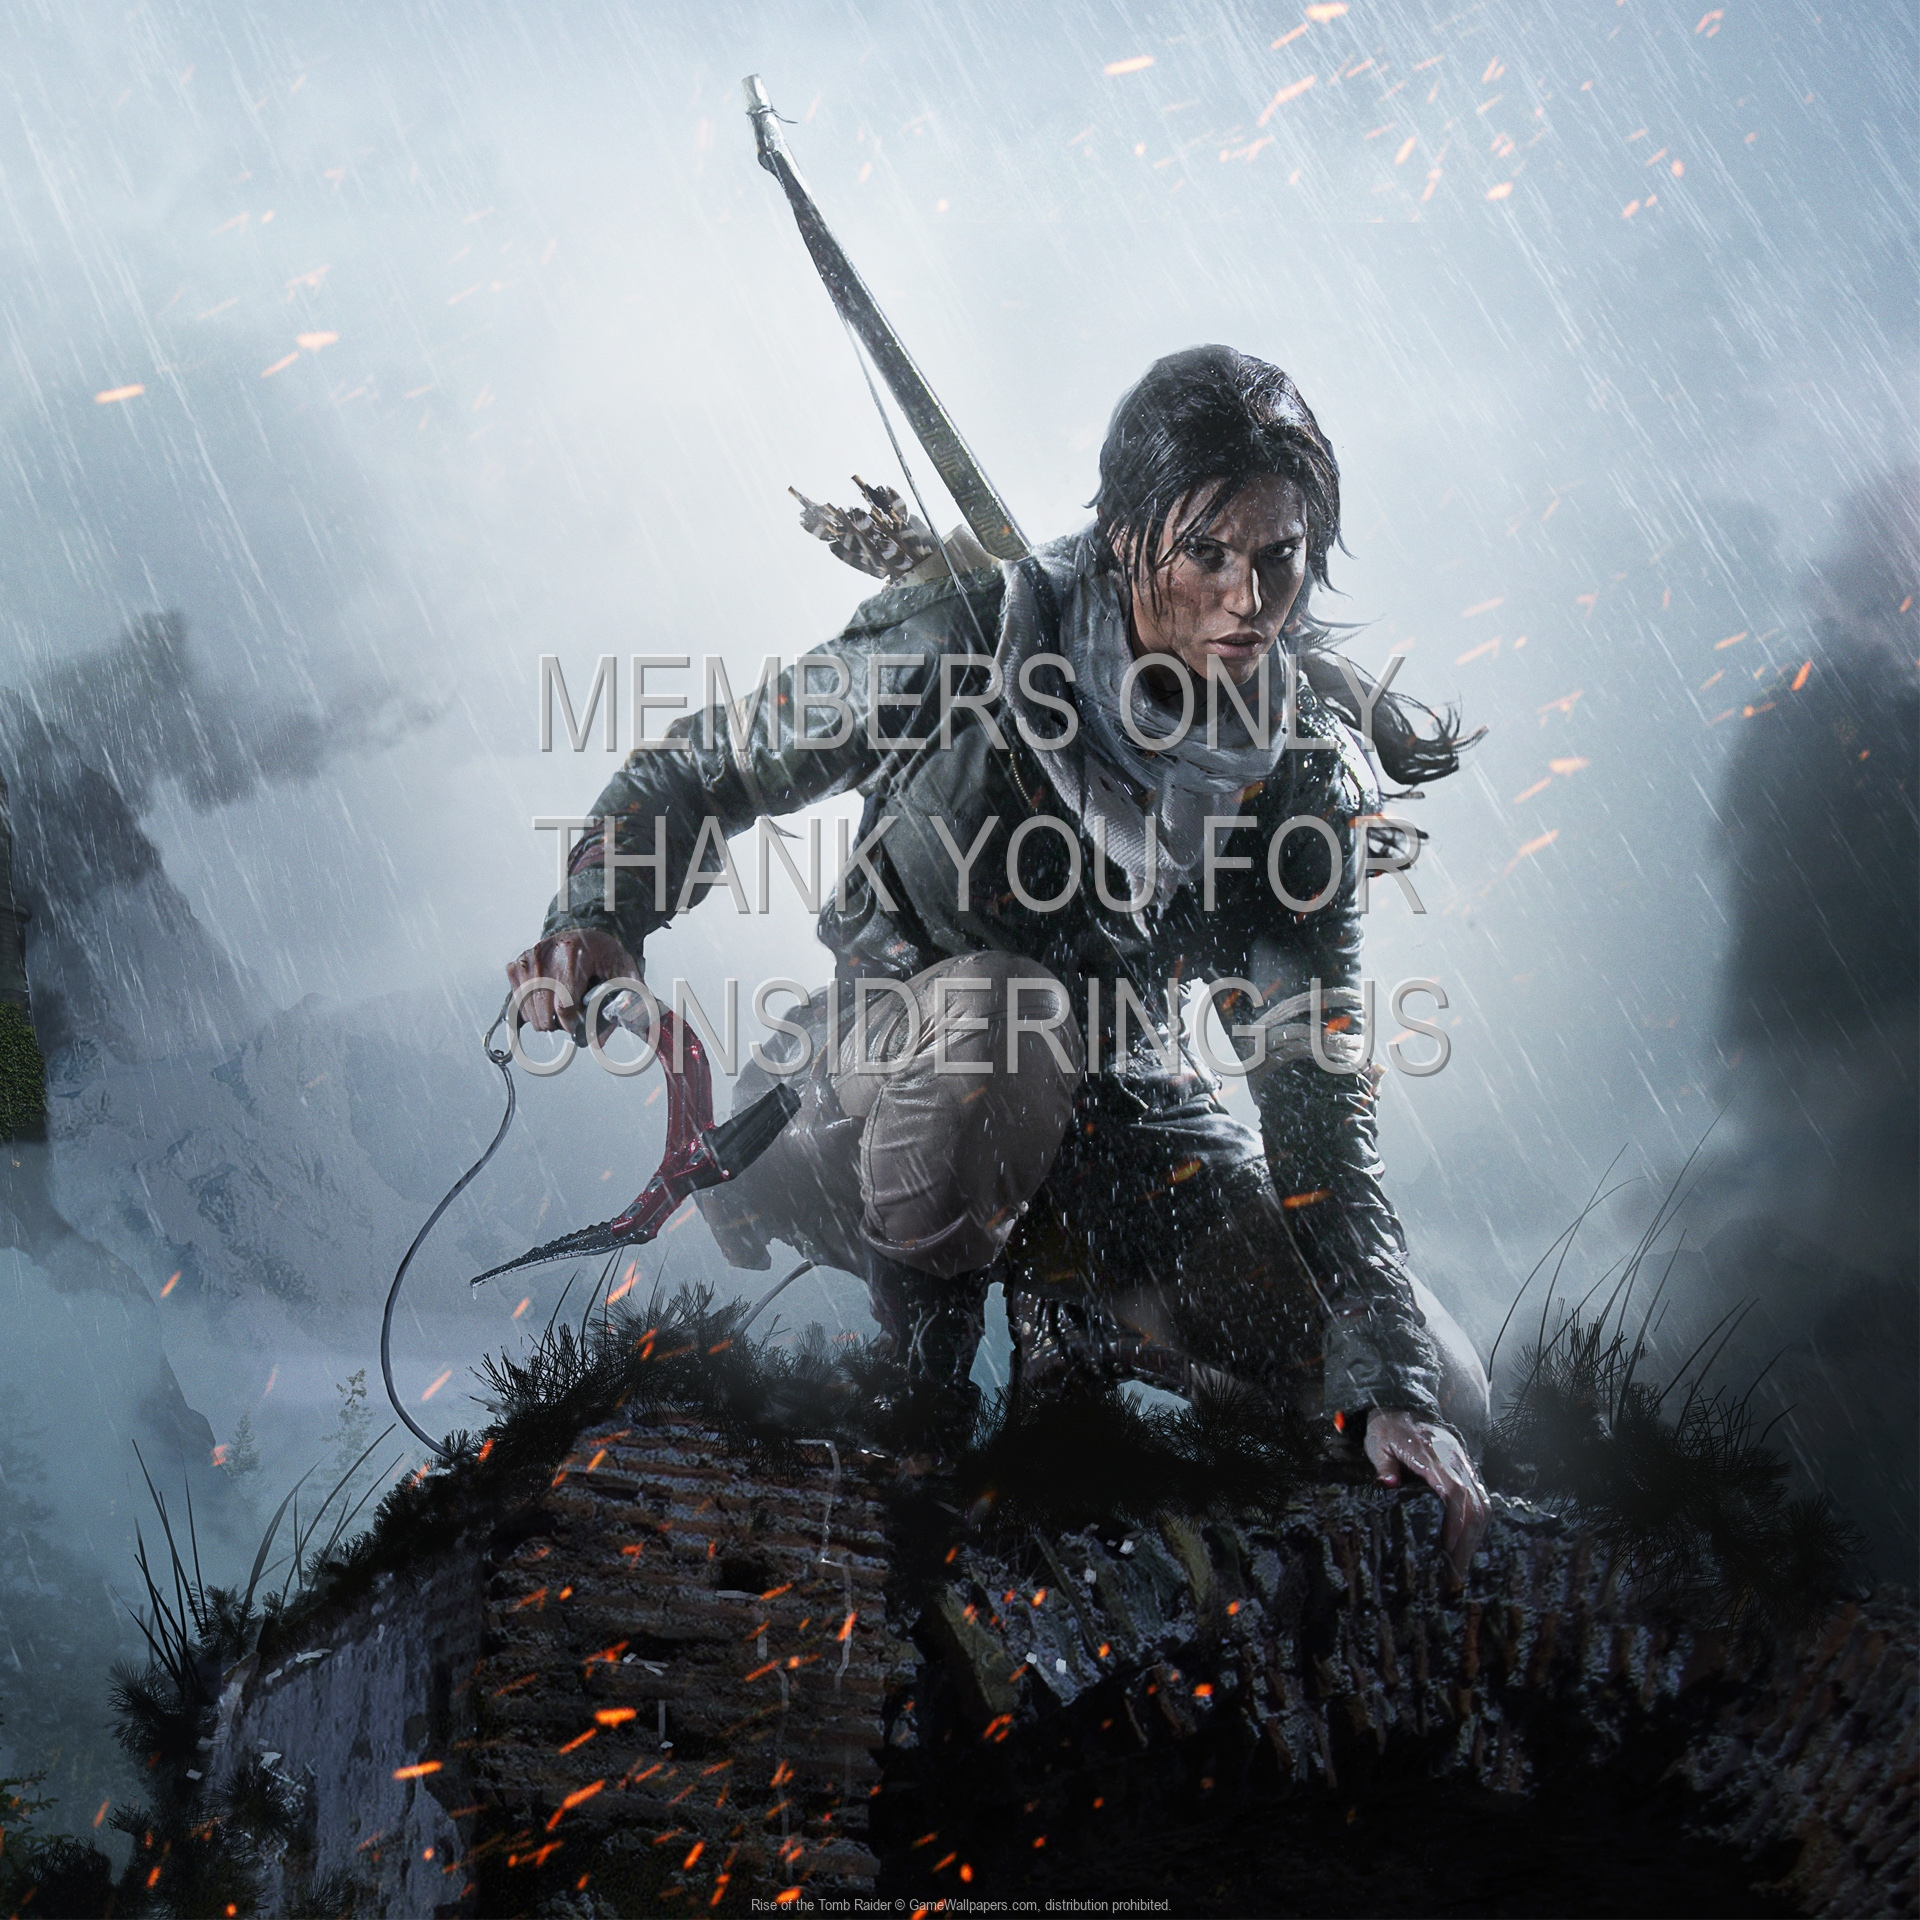 Rise of the Tomb Raider 1920x1080 Mobile wallpaper or background 13